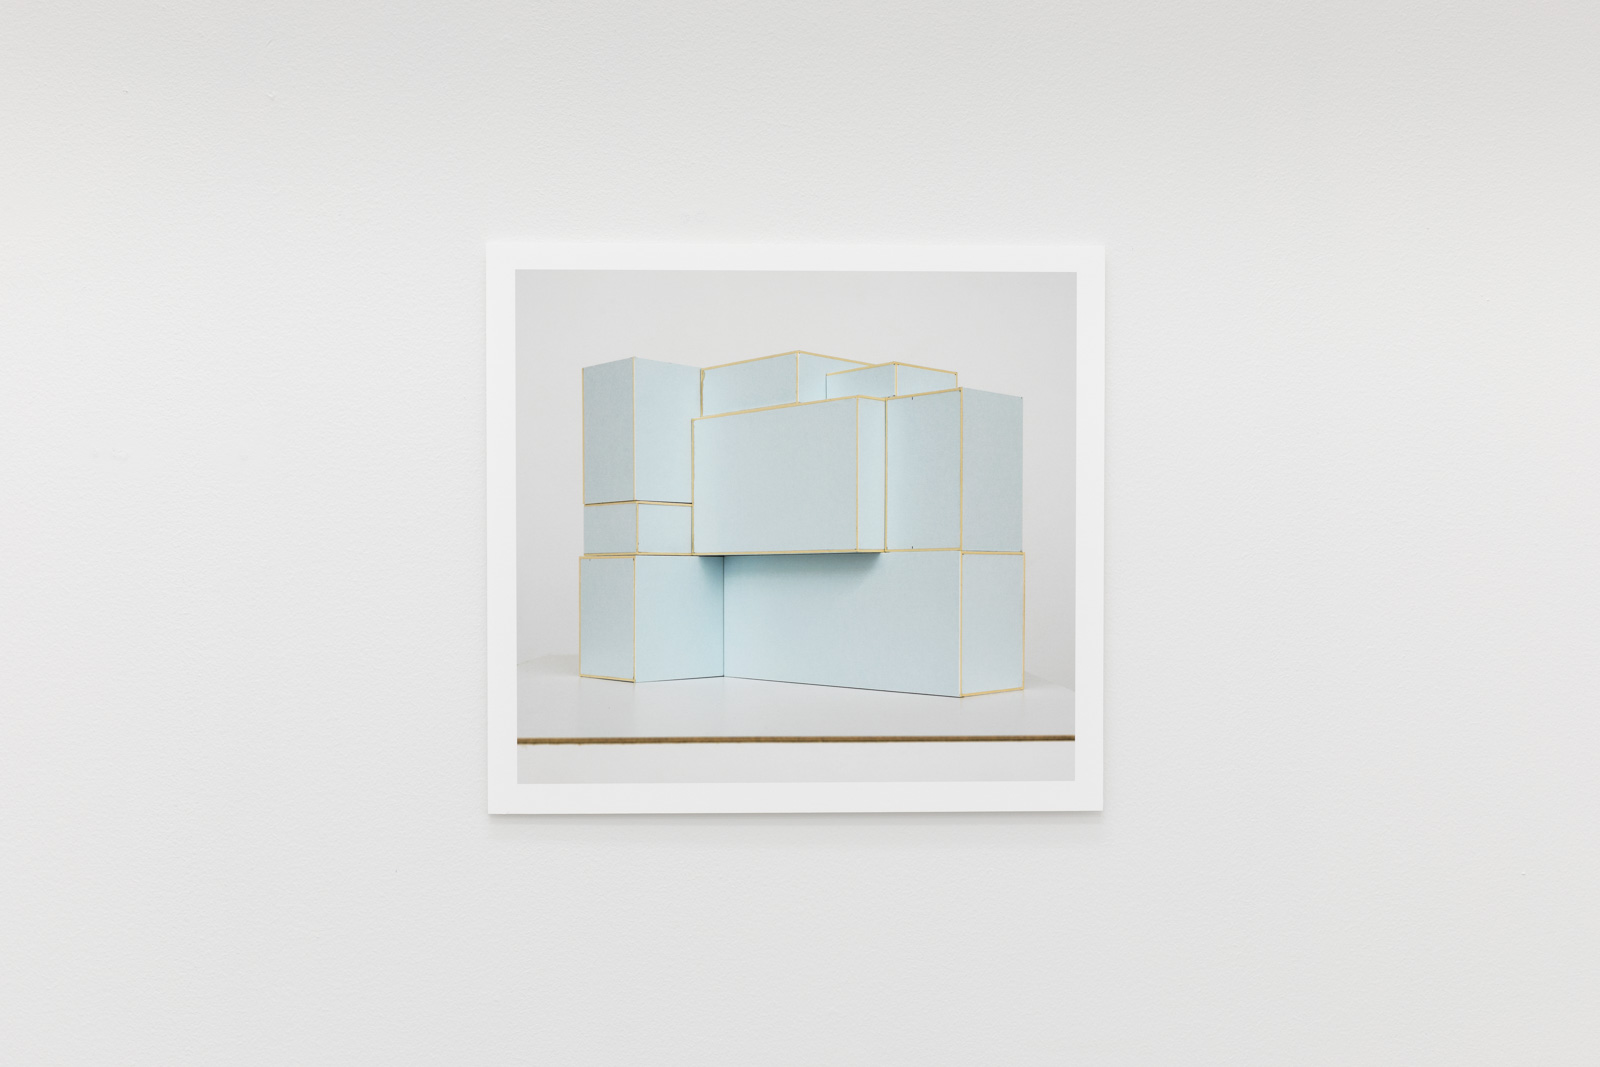 40 Pictures No 22/40, 2019. Archival inkjet print on Canson rag 210 gr. mounted on white acrylic glass. 35,5 x 38,5 cm. Ed. 5 + 2AP